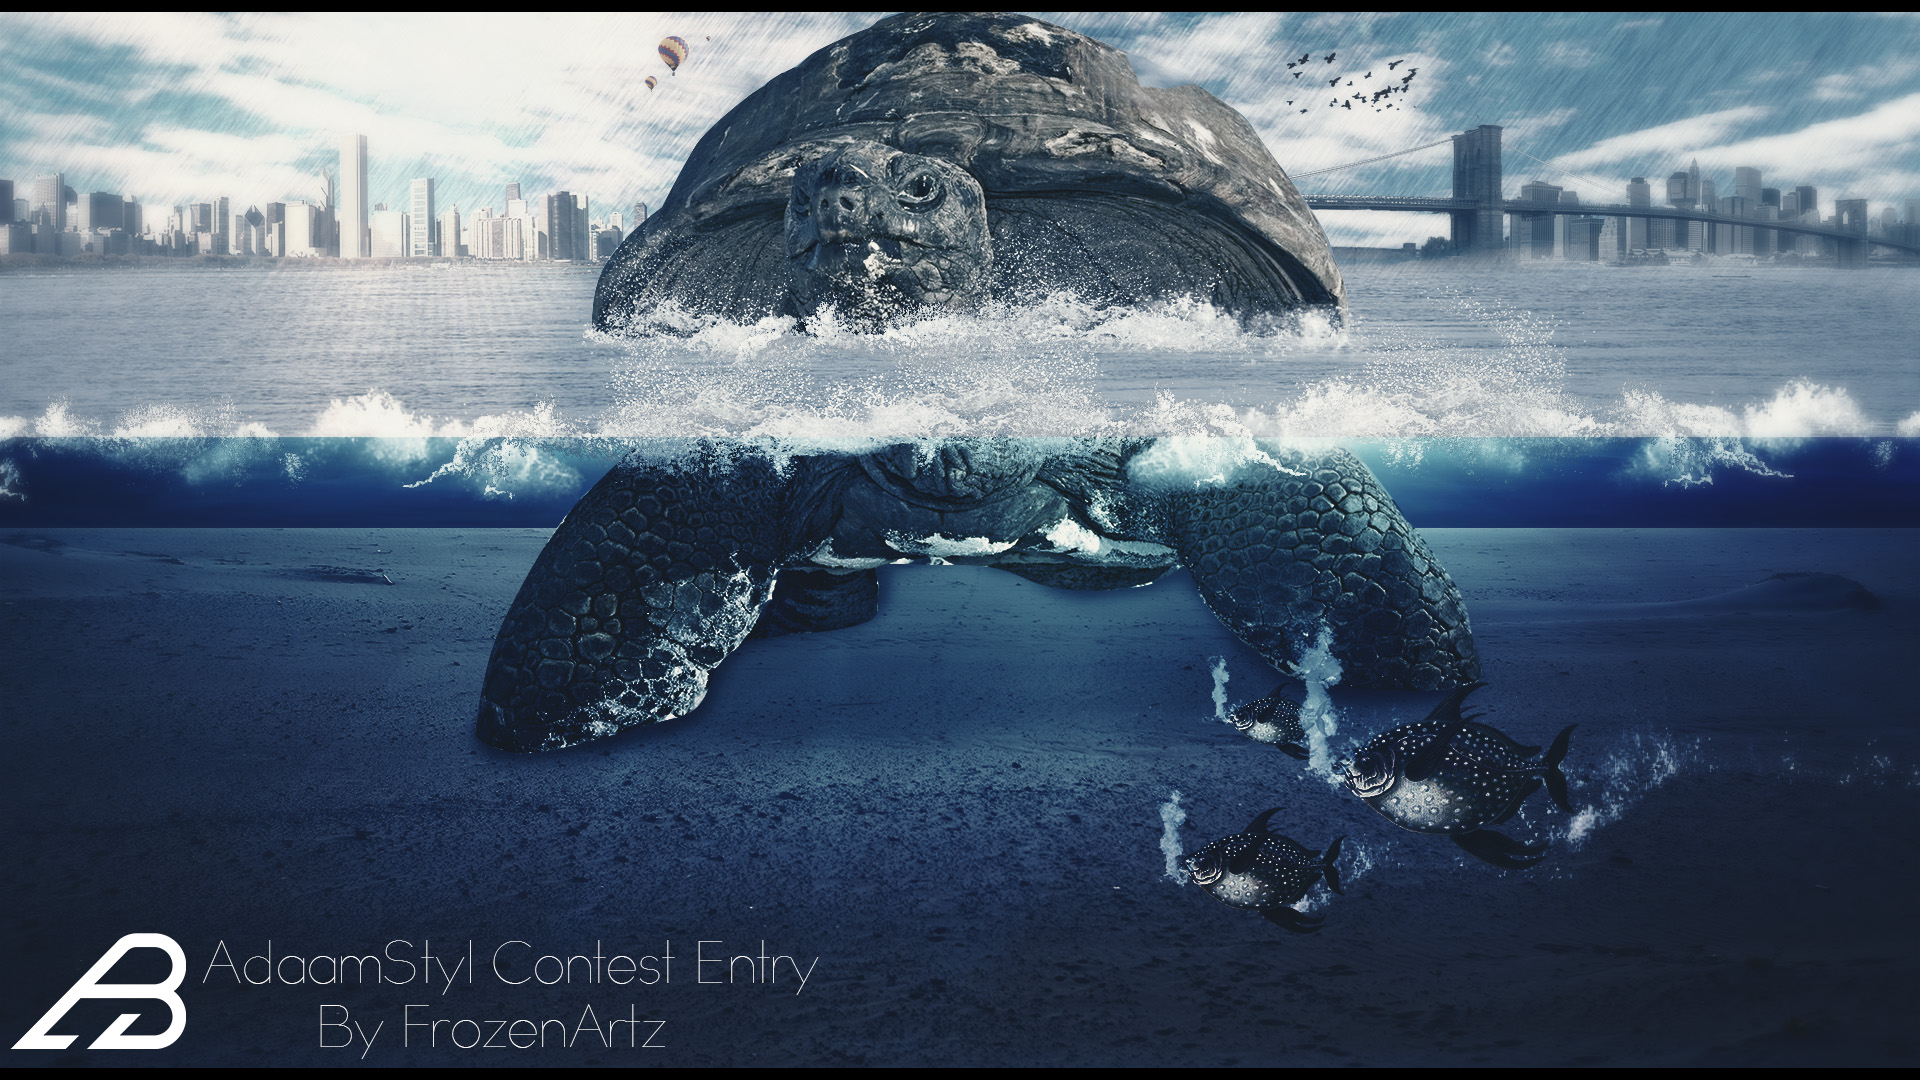 The Big Turtle! AdaamStyl Contest Entry by xFrozenArtz